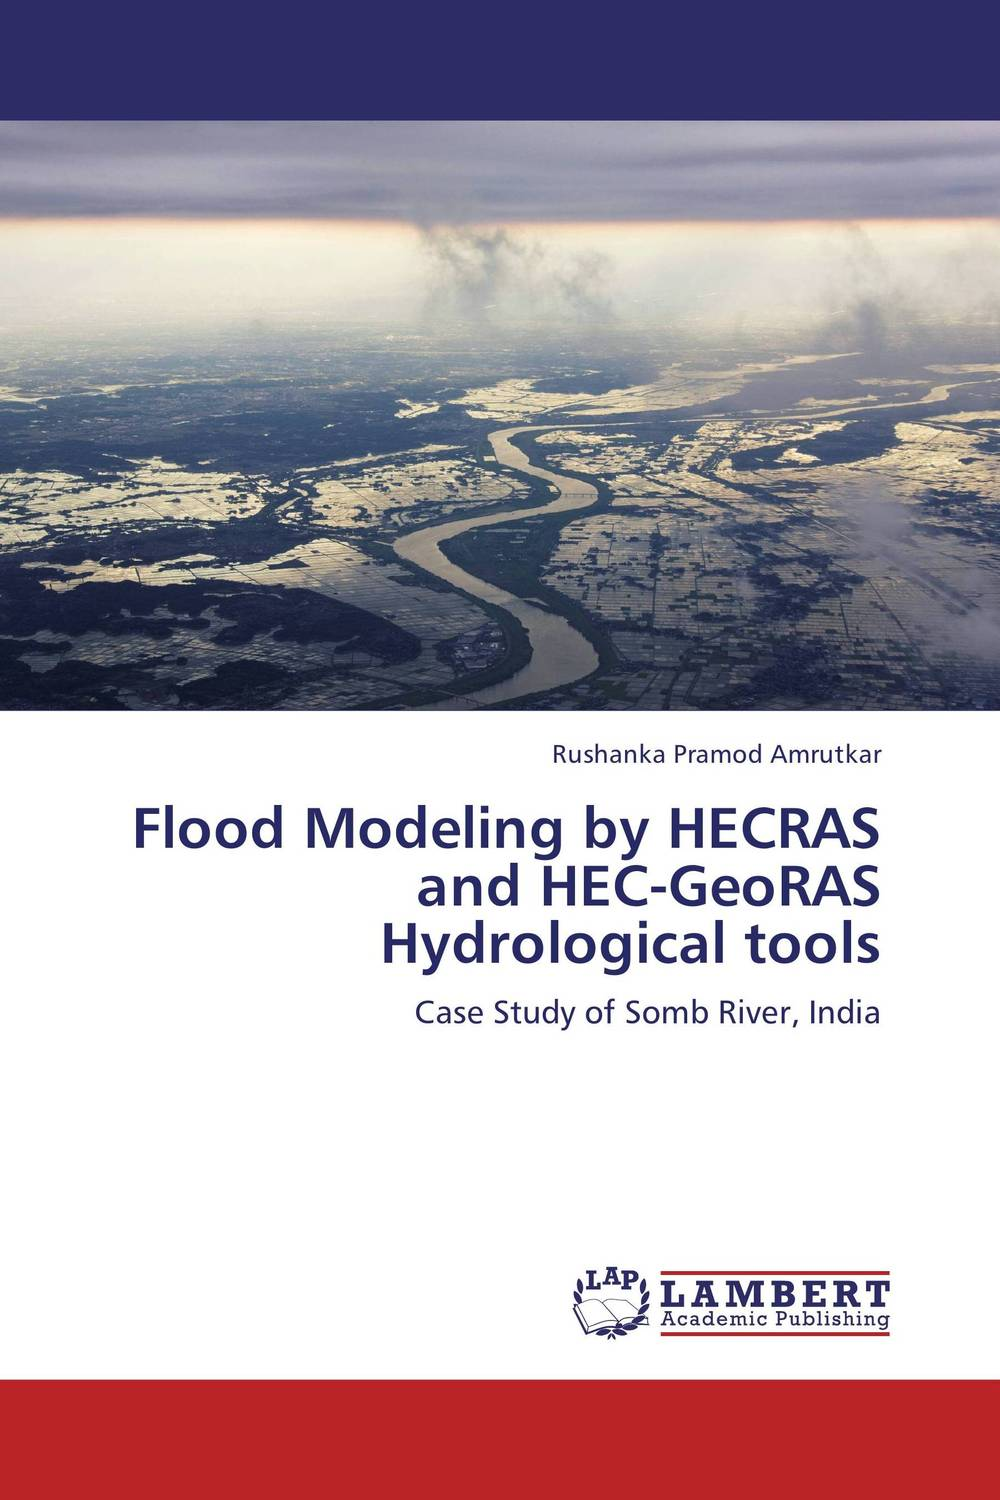 Flood Modeling by HECRAS and HEC-GeoRAS Hydrological tools history year by year